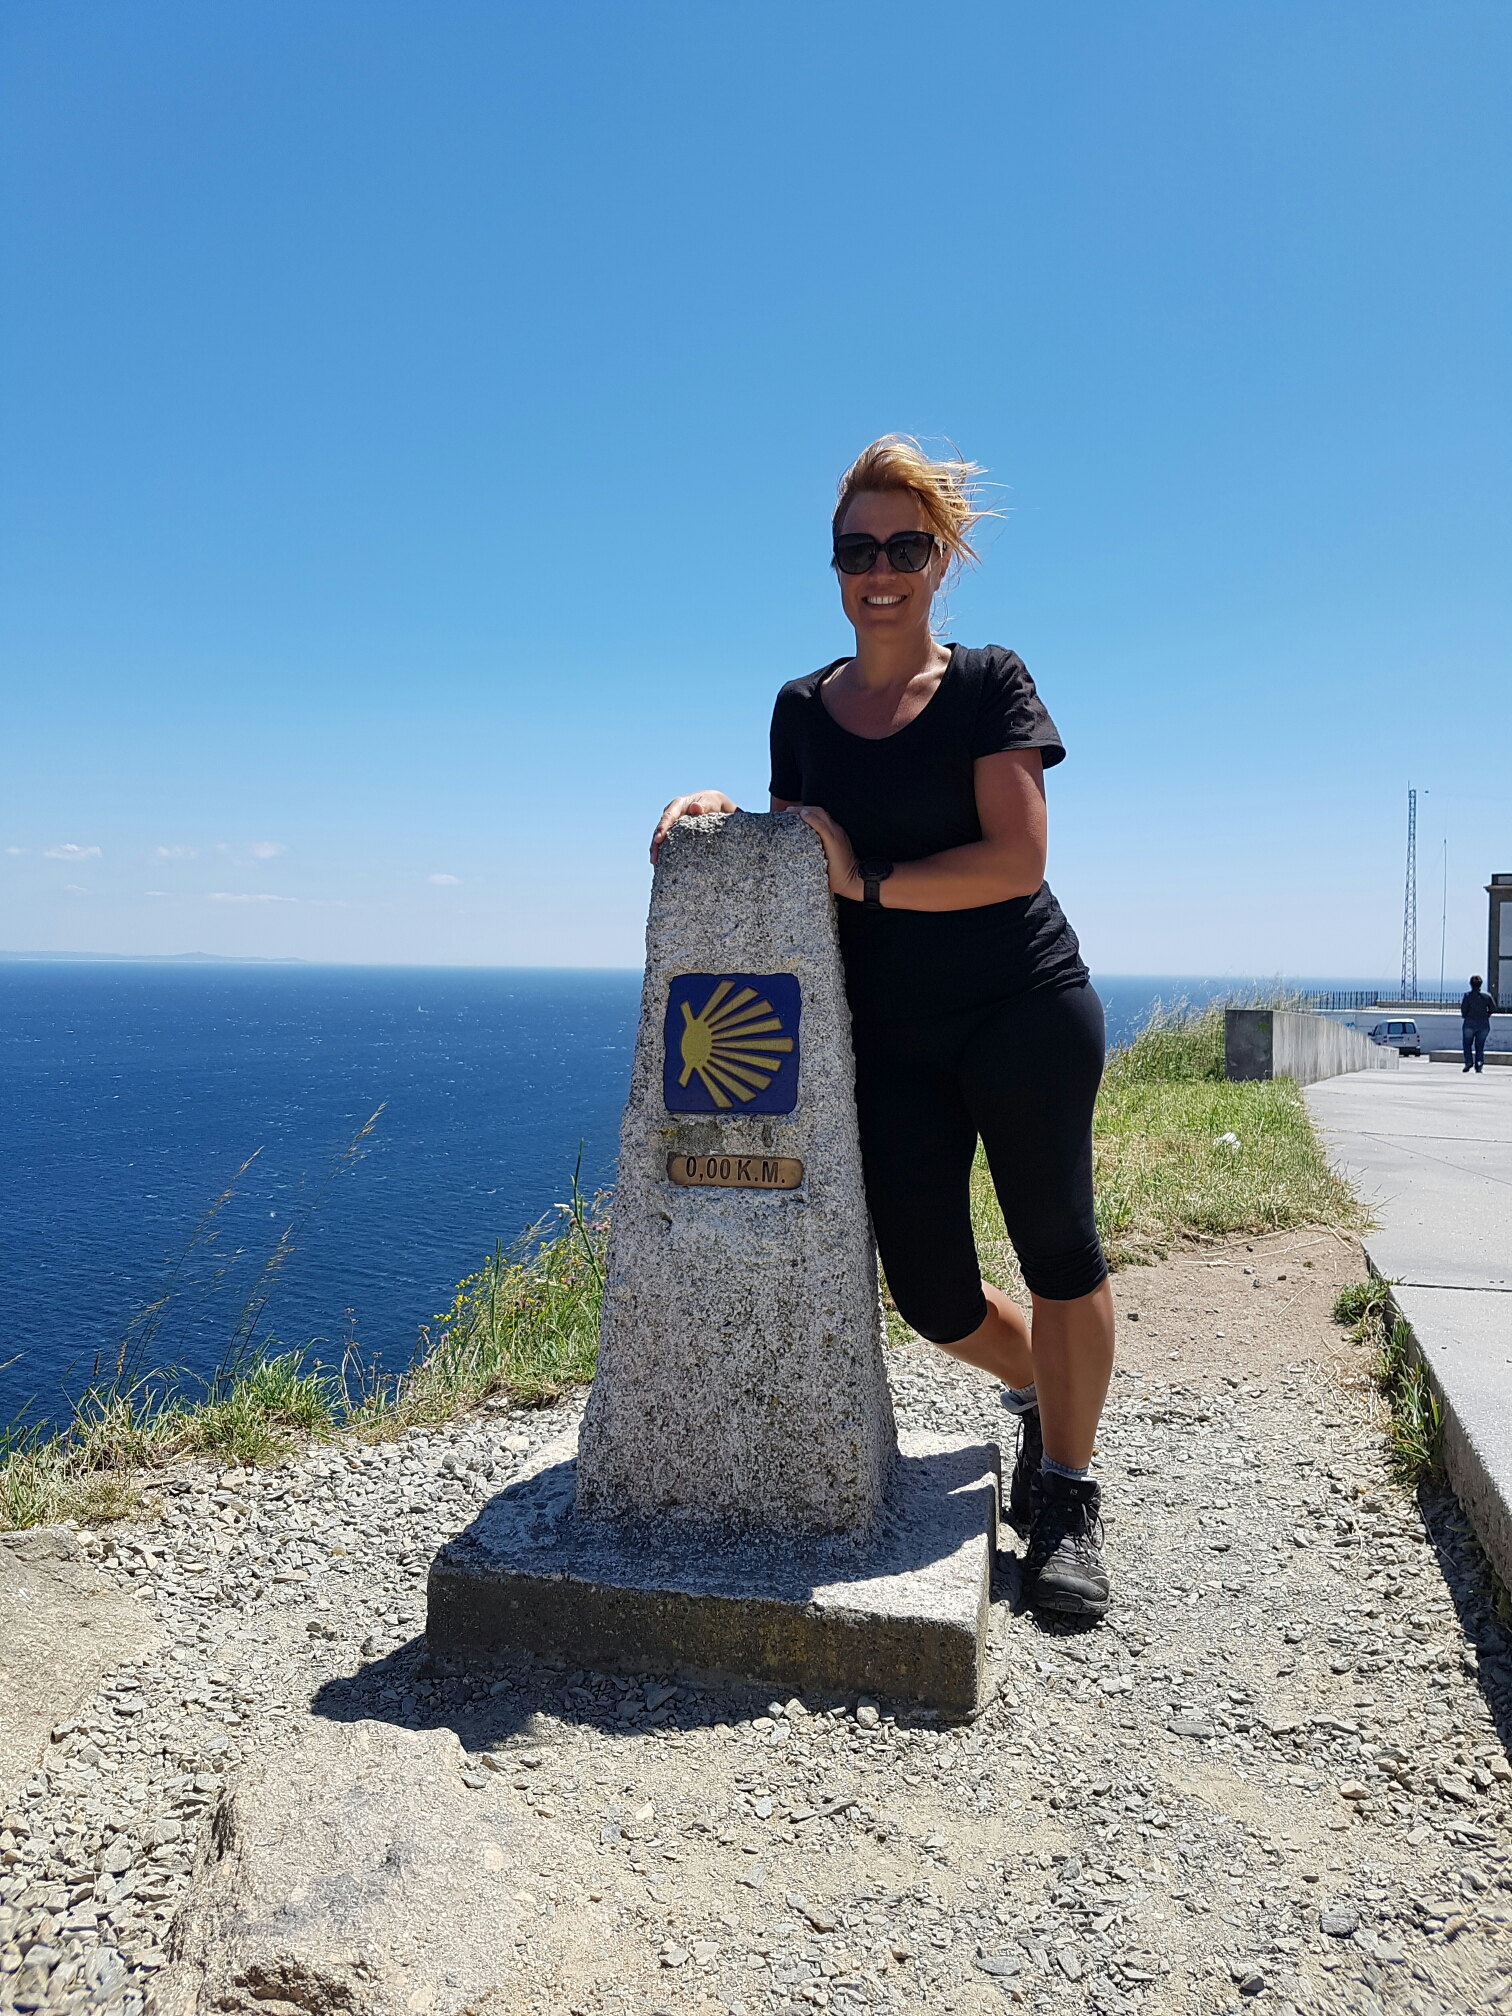 ...and at the 0km mark at Fisterra, Spain after 900km of walking!